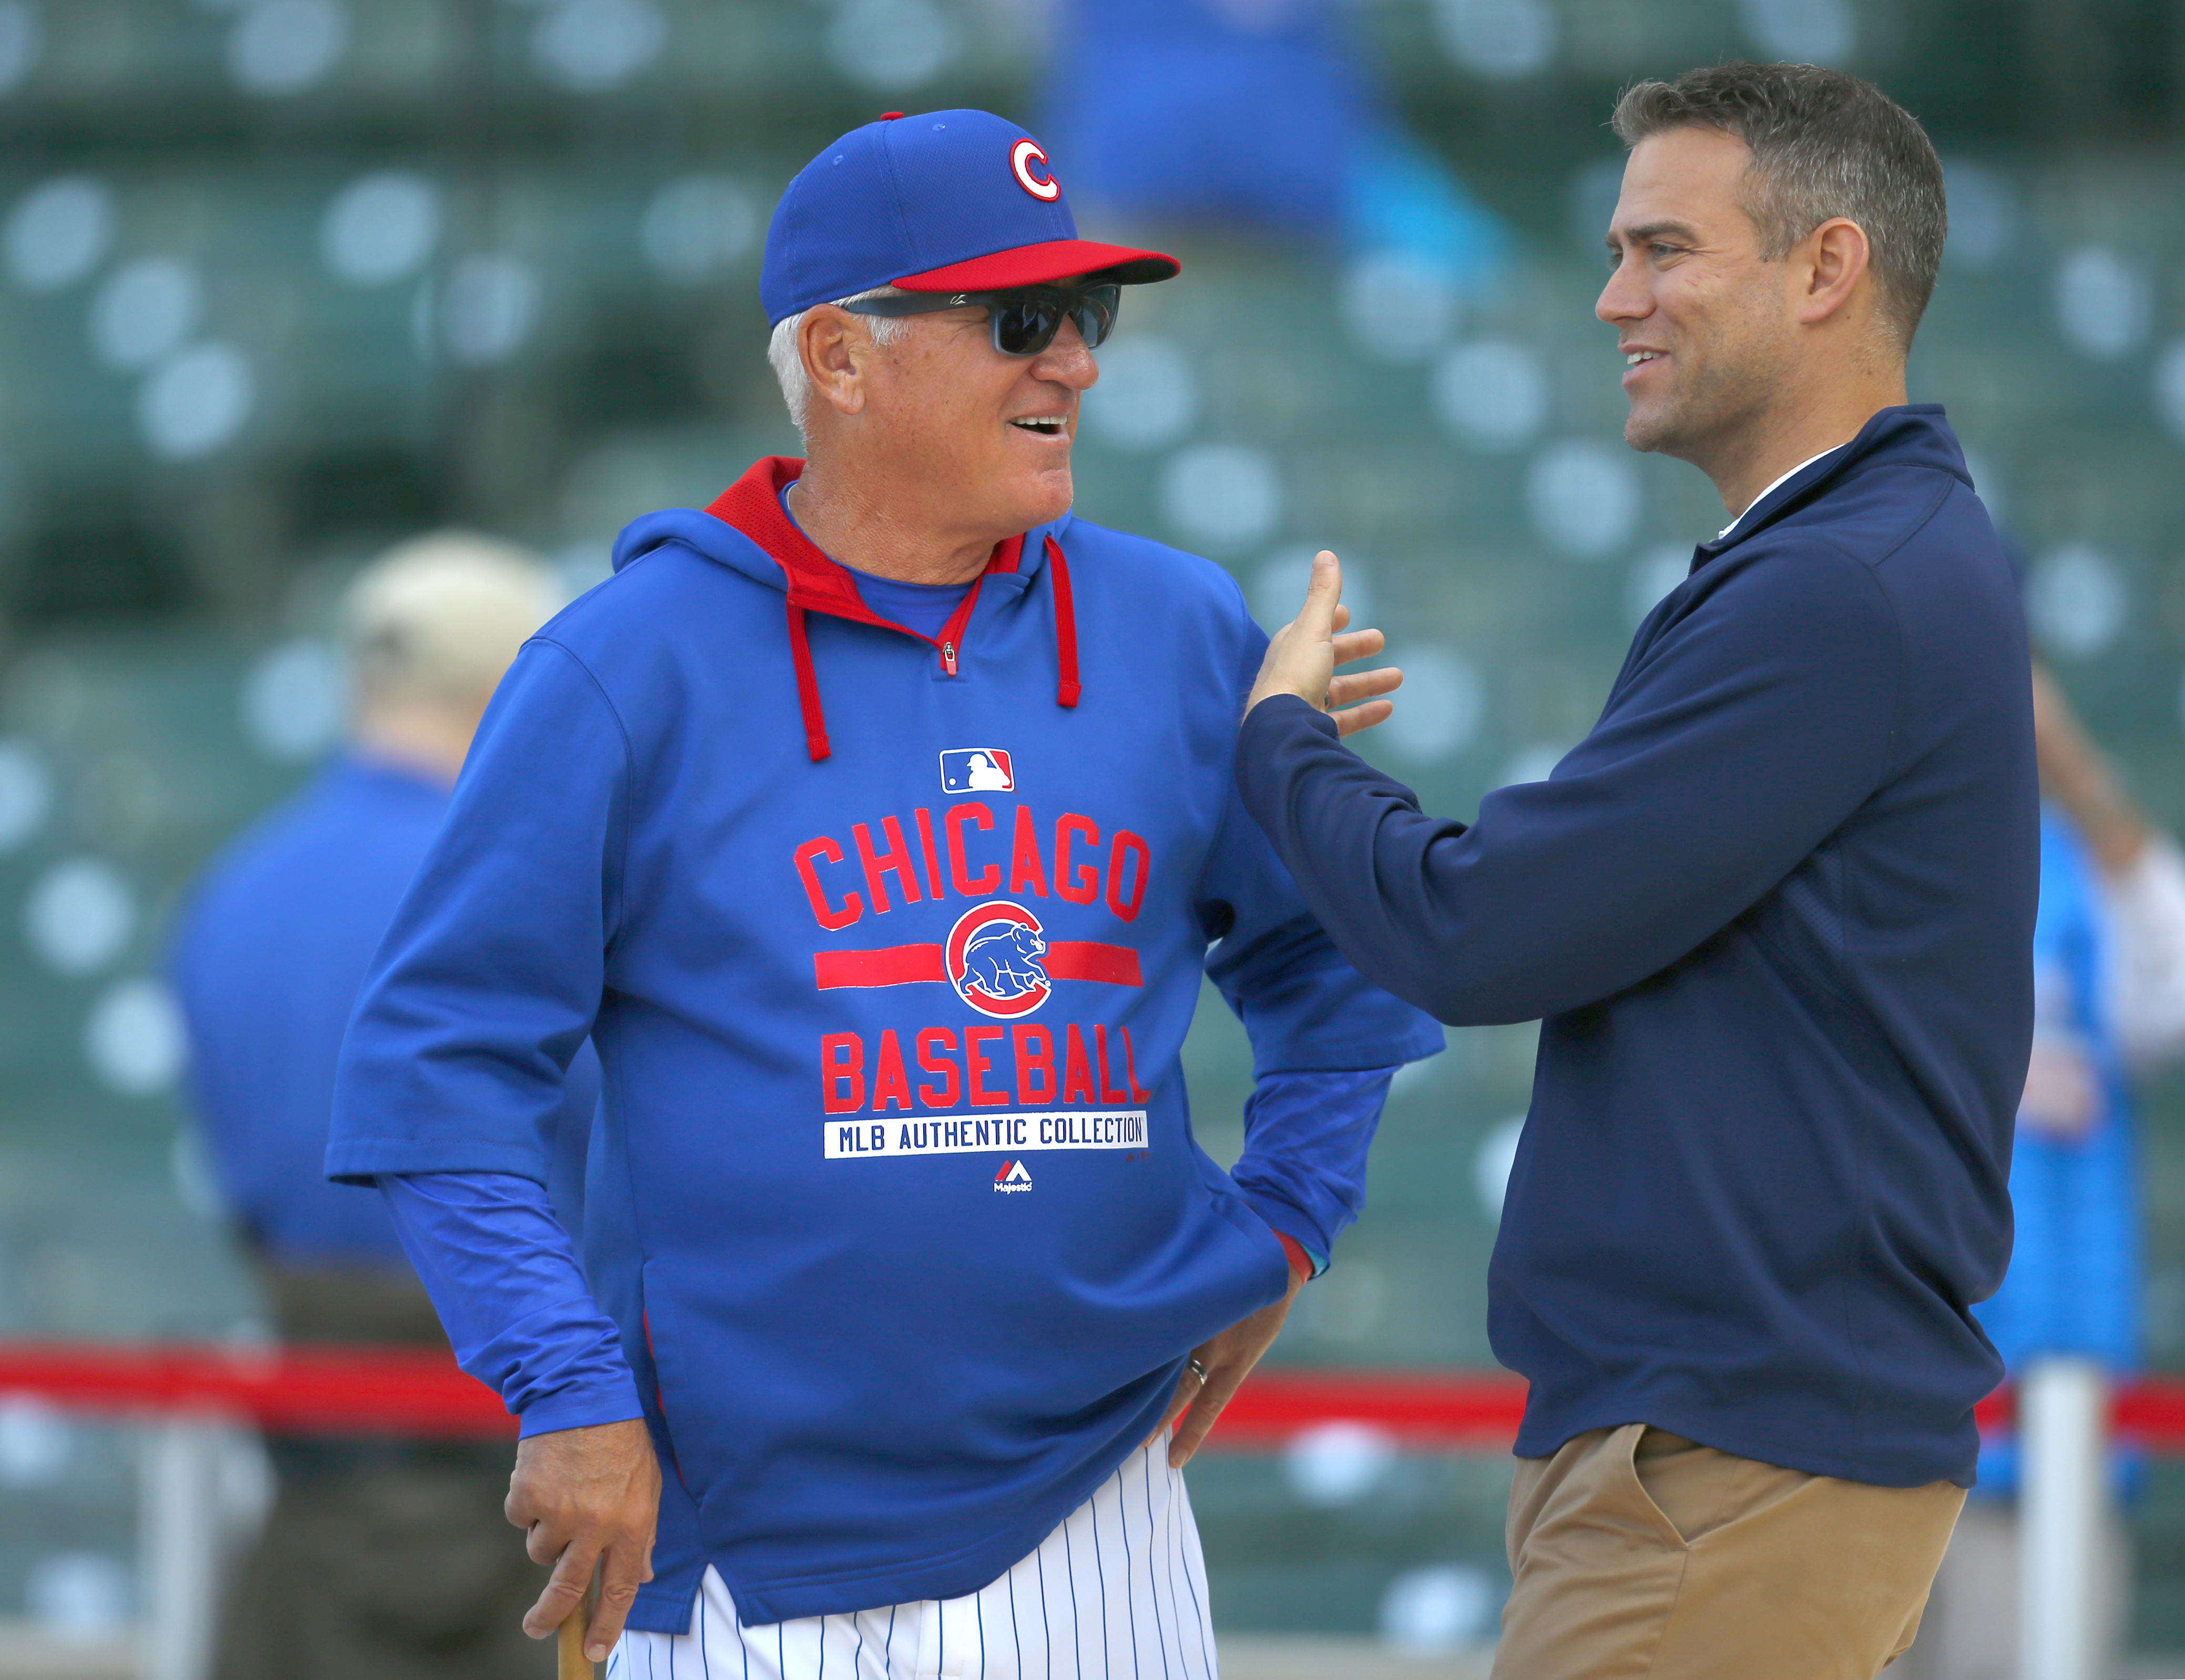 FILE - In this April 13, 2015, file photo, Theo Epstein, right, Chicago Cubs president of baseball operations, talks with Cubs manager Joe Maddon during batting practice before the Cubs' baseball game against the Cincinnati Reds in Chicago. With runs at a